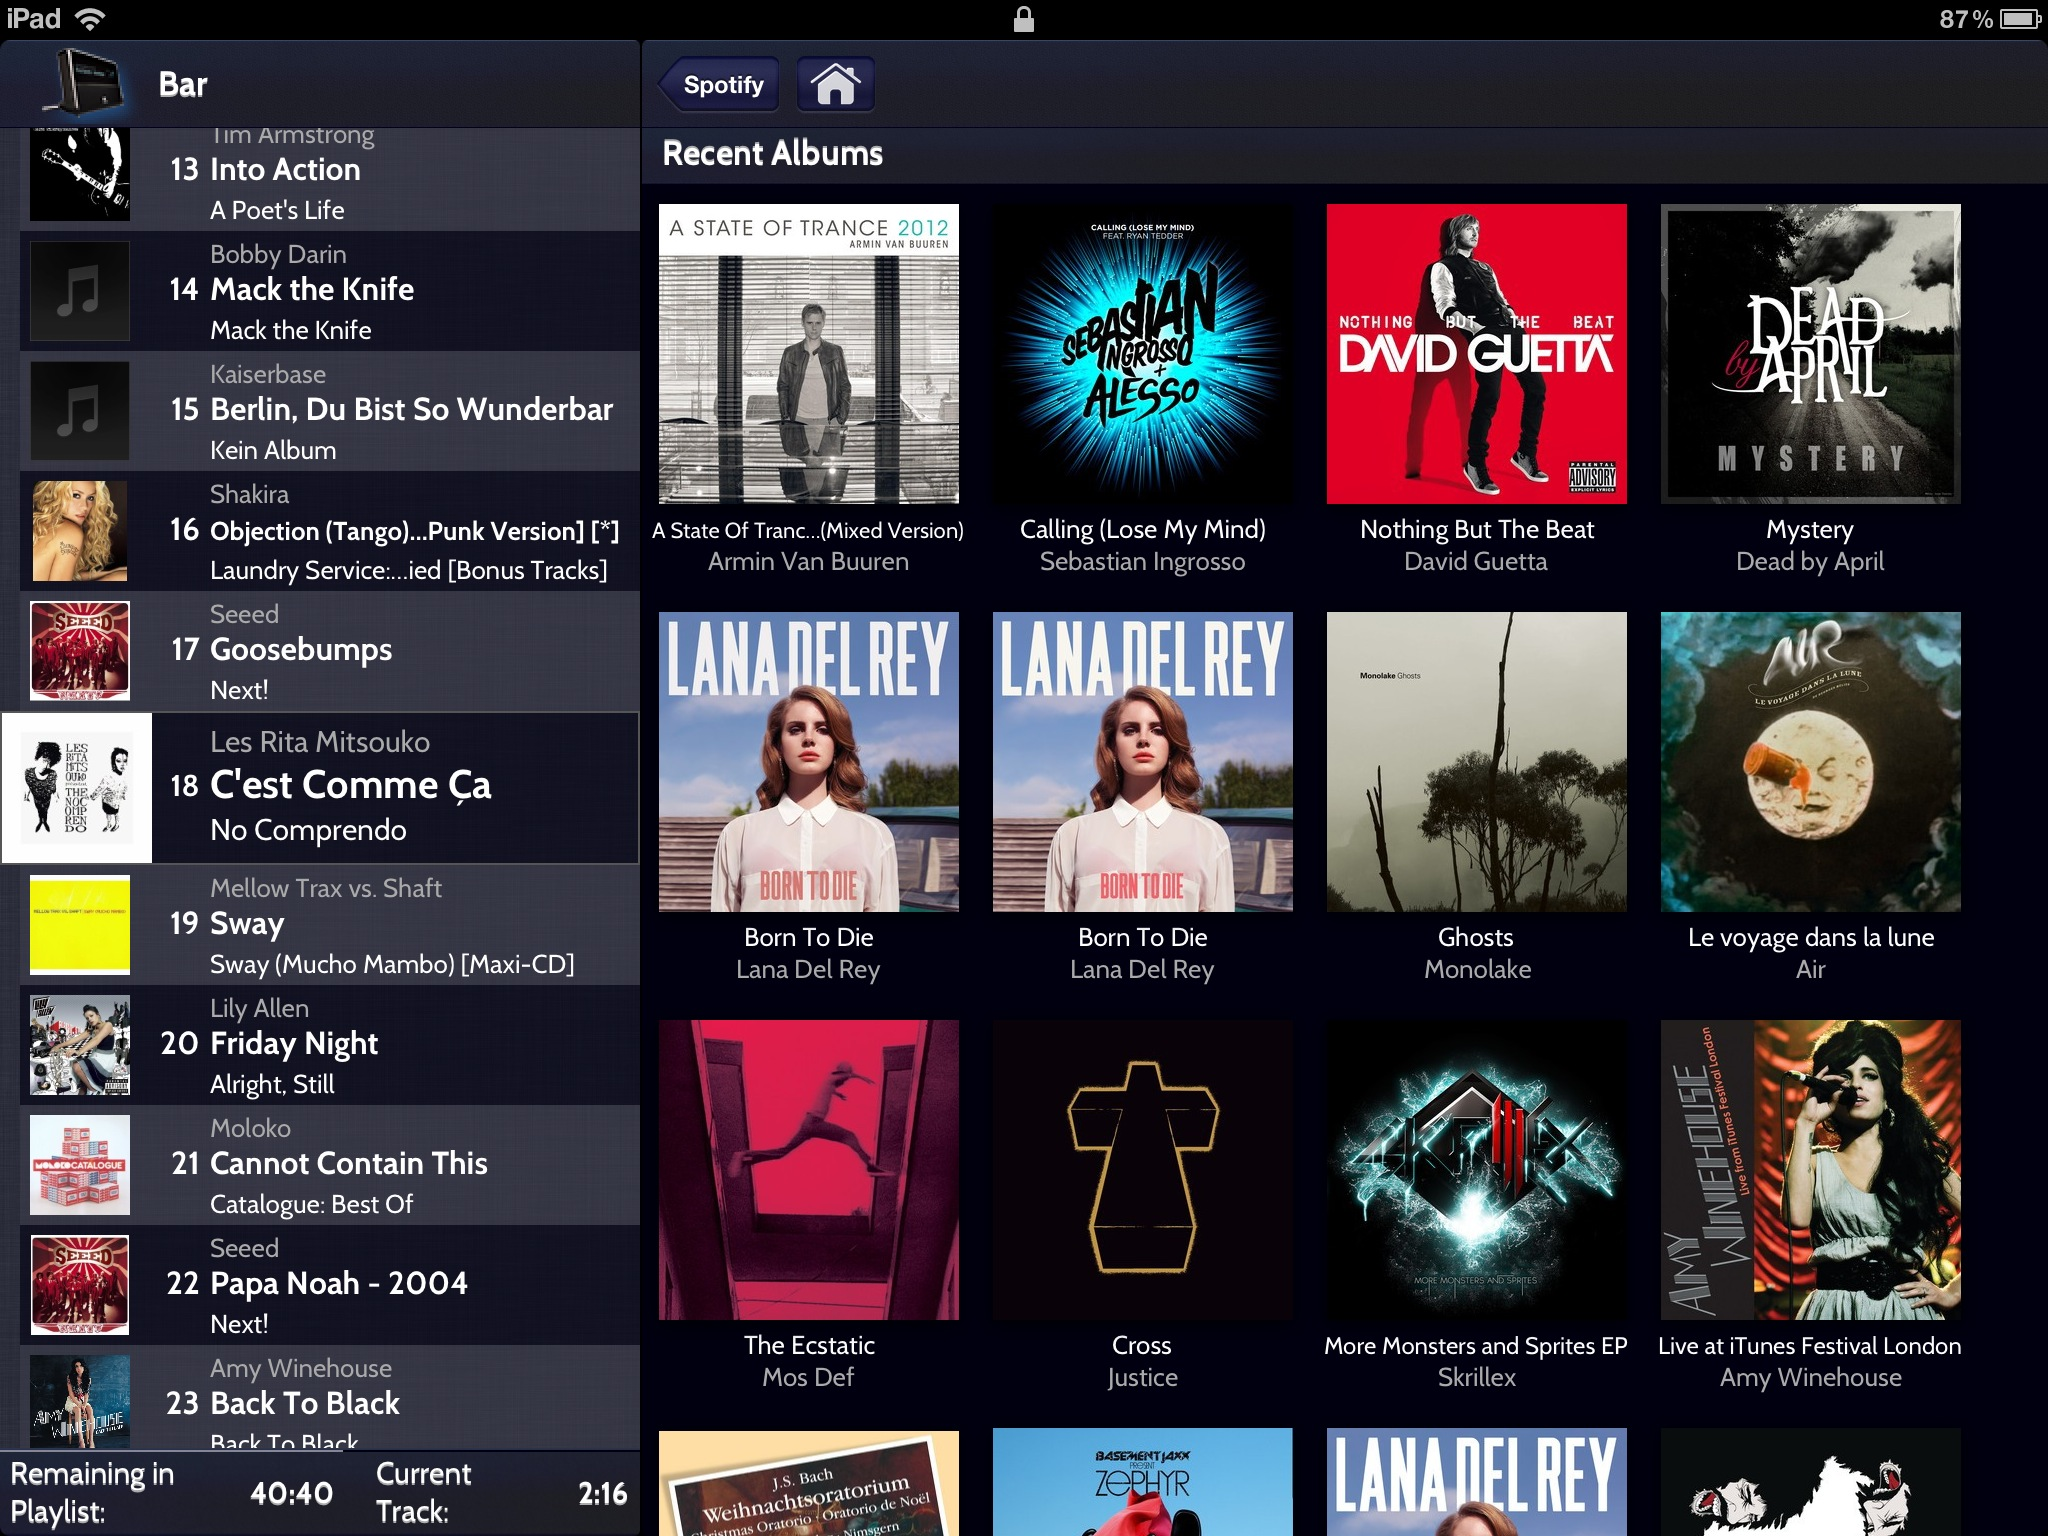 List of Albums on iPad